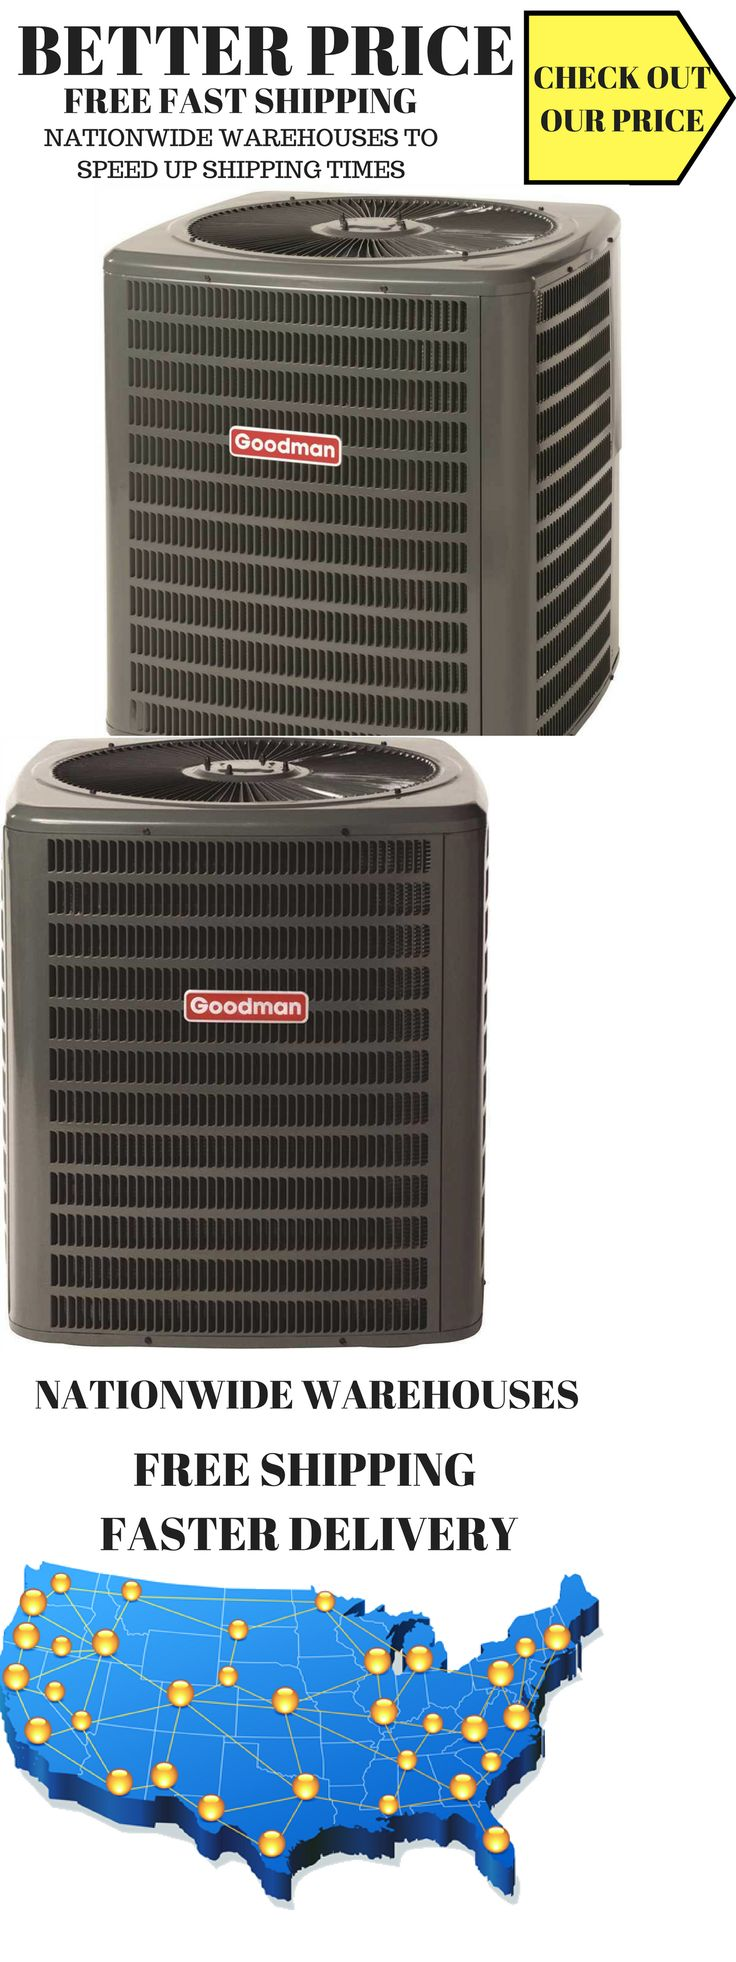 Central Air Conditioners 185108 Goodman Gsx140421 14 Seer